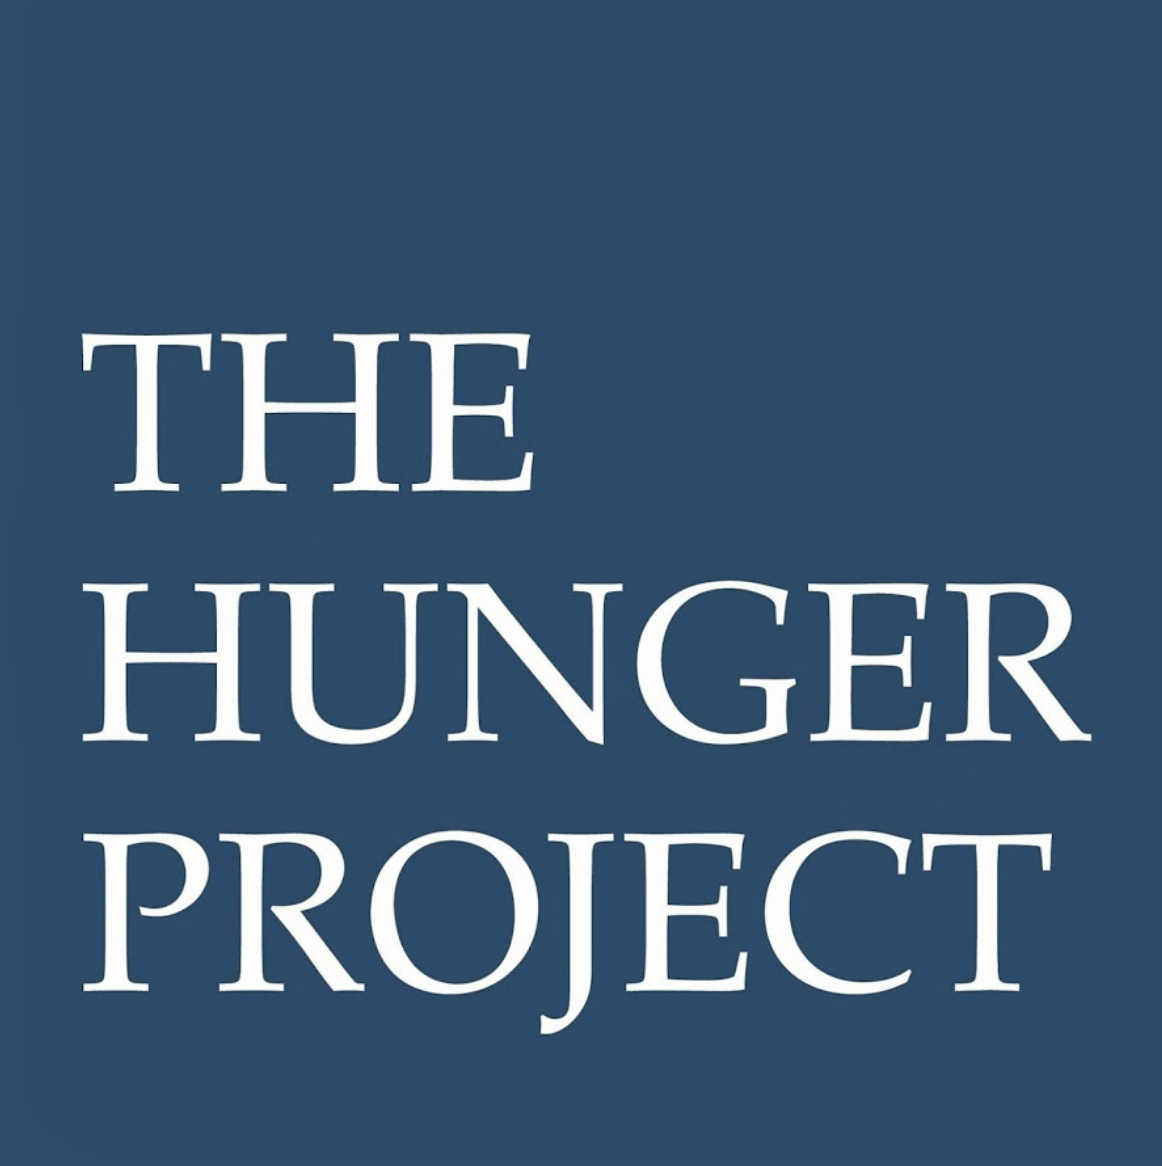 """The mantra of this global organization is - Empowering Men and Women to End Their Own Hunger. """"Founded in 1977, The Hunger Project is a global, strategic organization committed to the sustainable end of world hunger. In Africa, Asia, and Latin America, The Hunger Project empowers people to lead lives of self-reliance, meet their own basic needs and build better futures for their children. The Hunger Project carries out its mission through three essential activities: mobilizing village clusters at the grassroots level to build self-reliance, empowering women as key change agents, and forging effective partnerships with local government."""""""